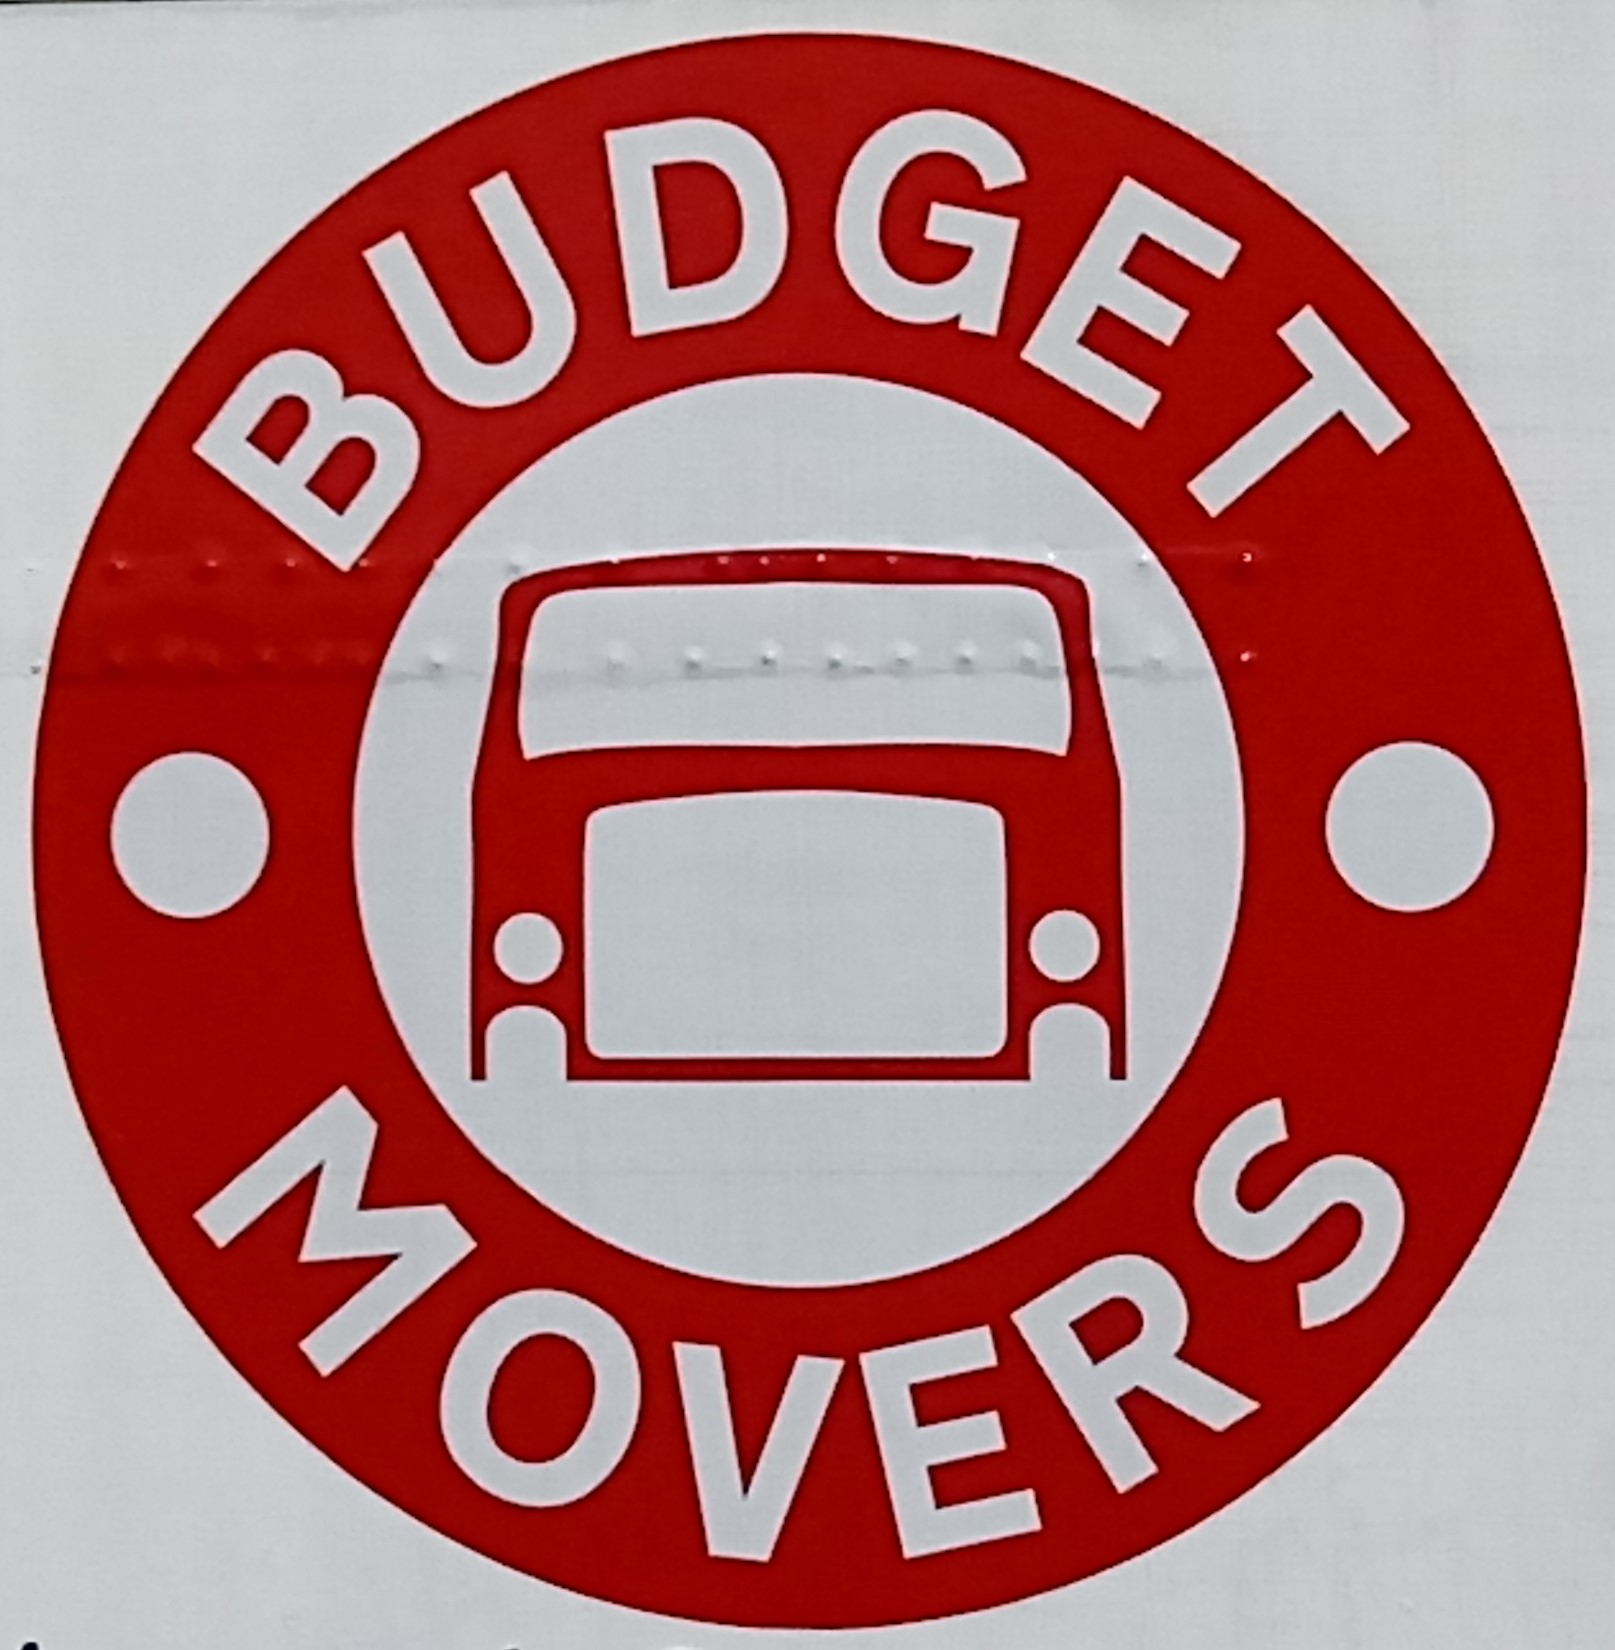 Budget Movers of Augusta Inc